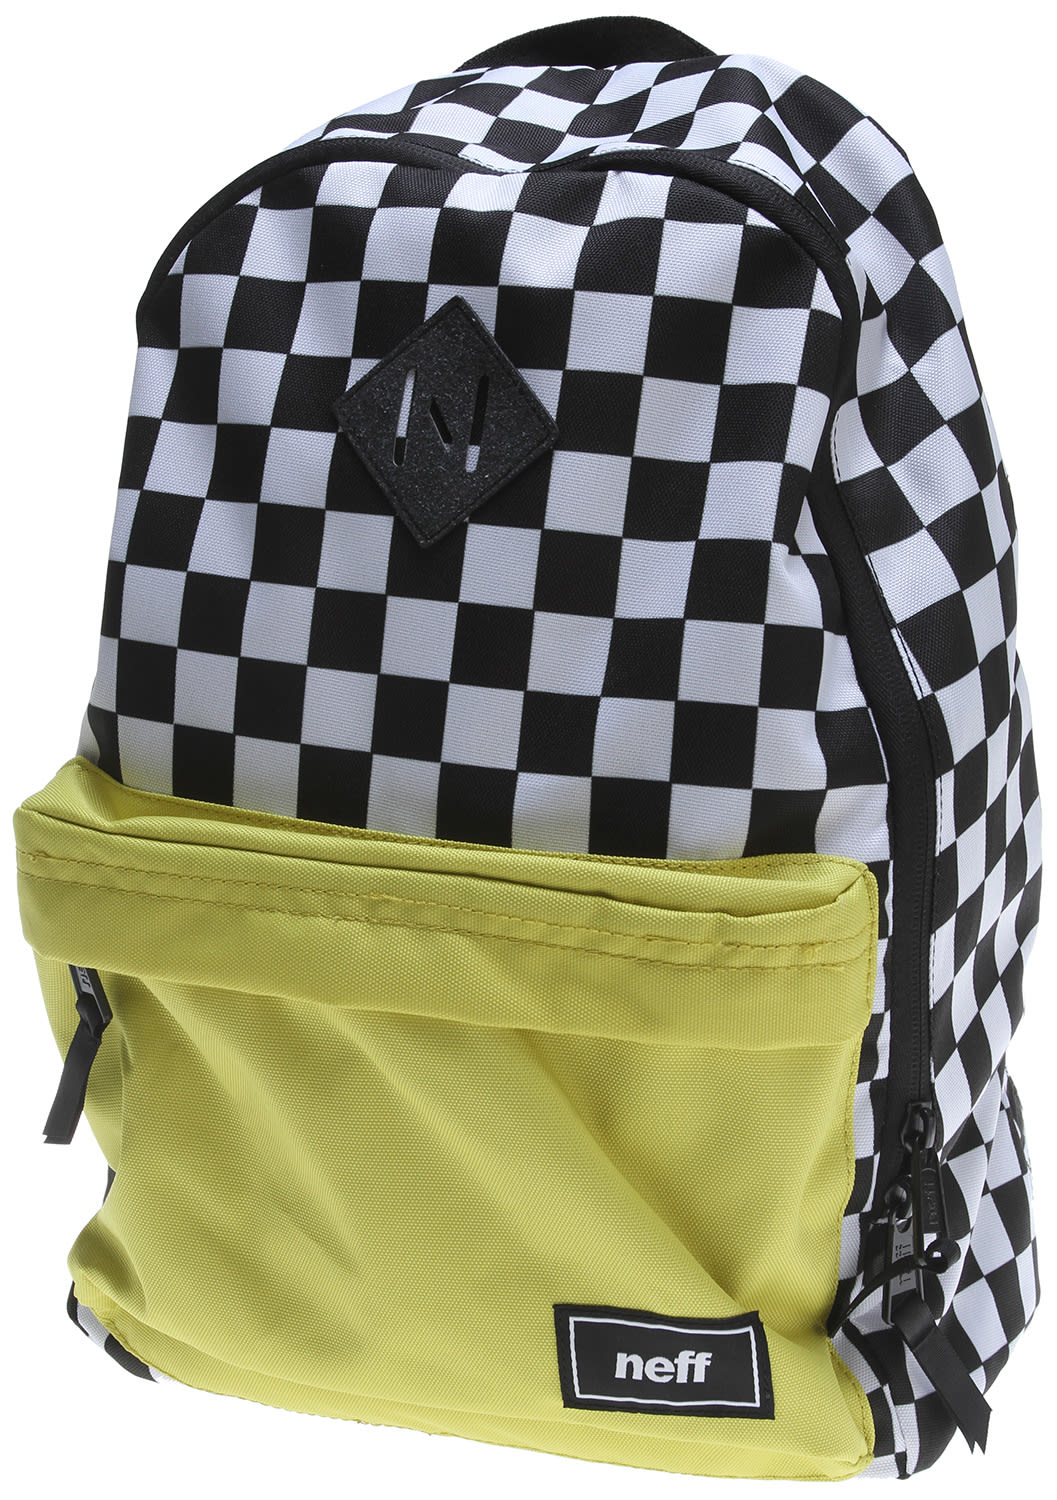 Neff Scholar Backpack Checker